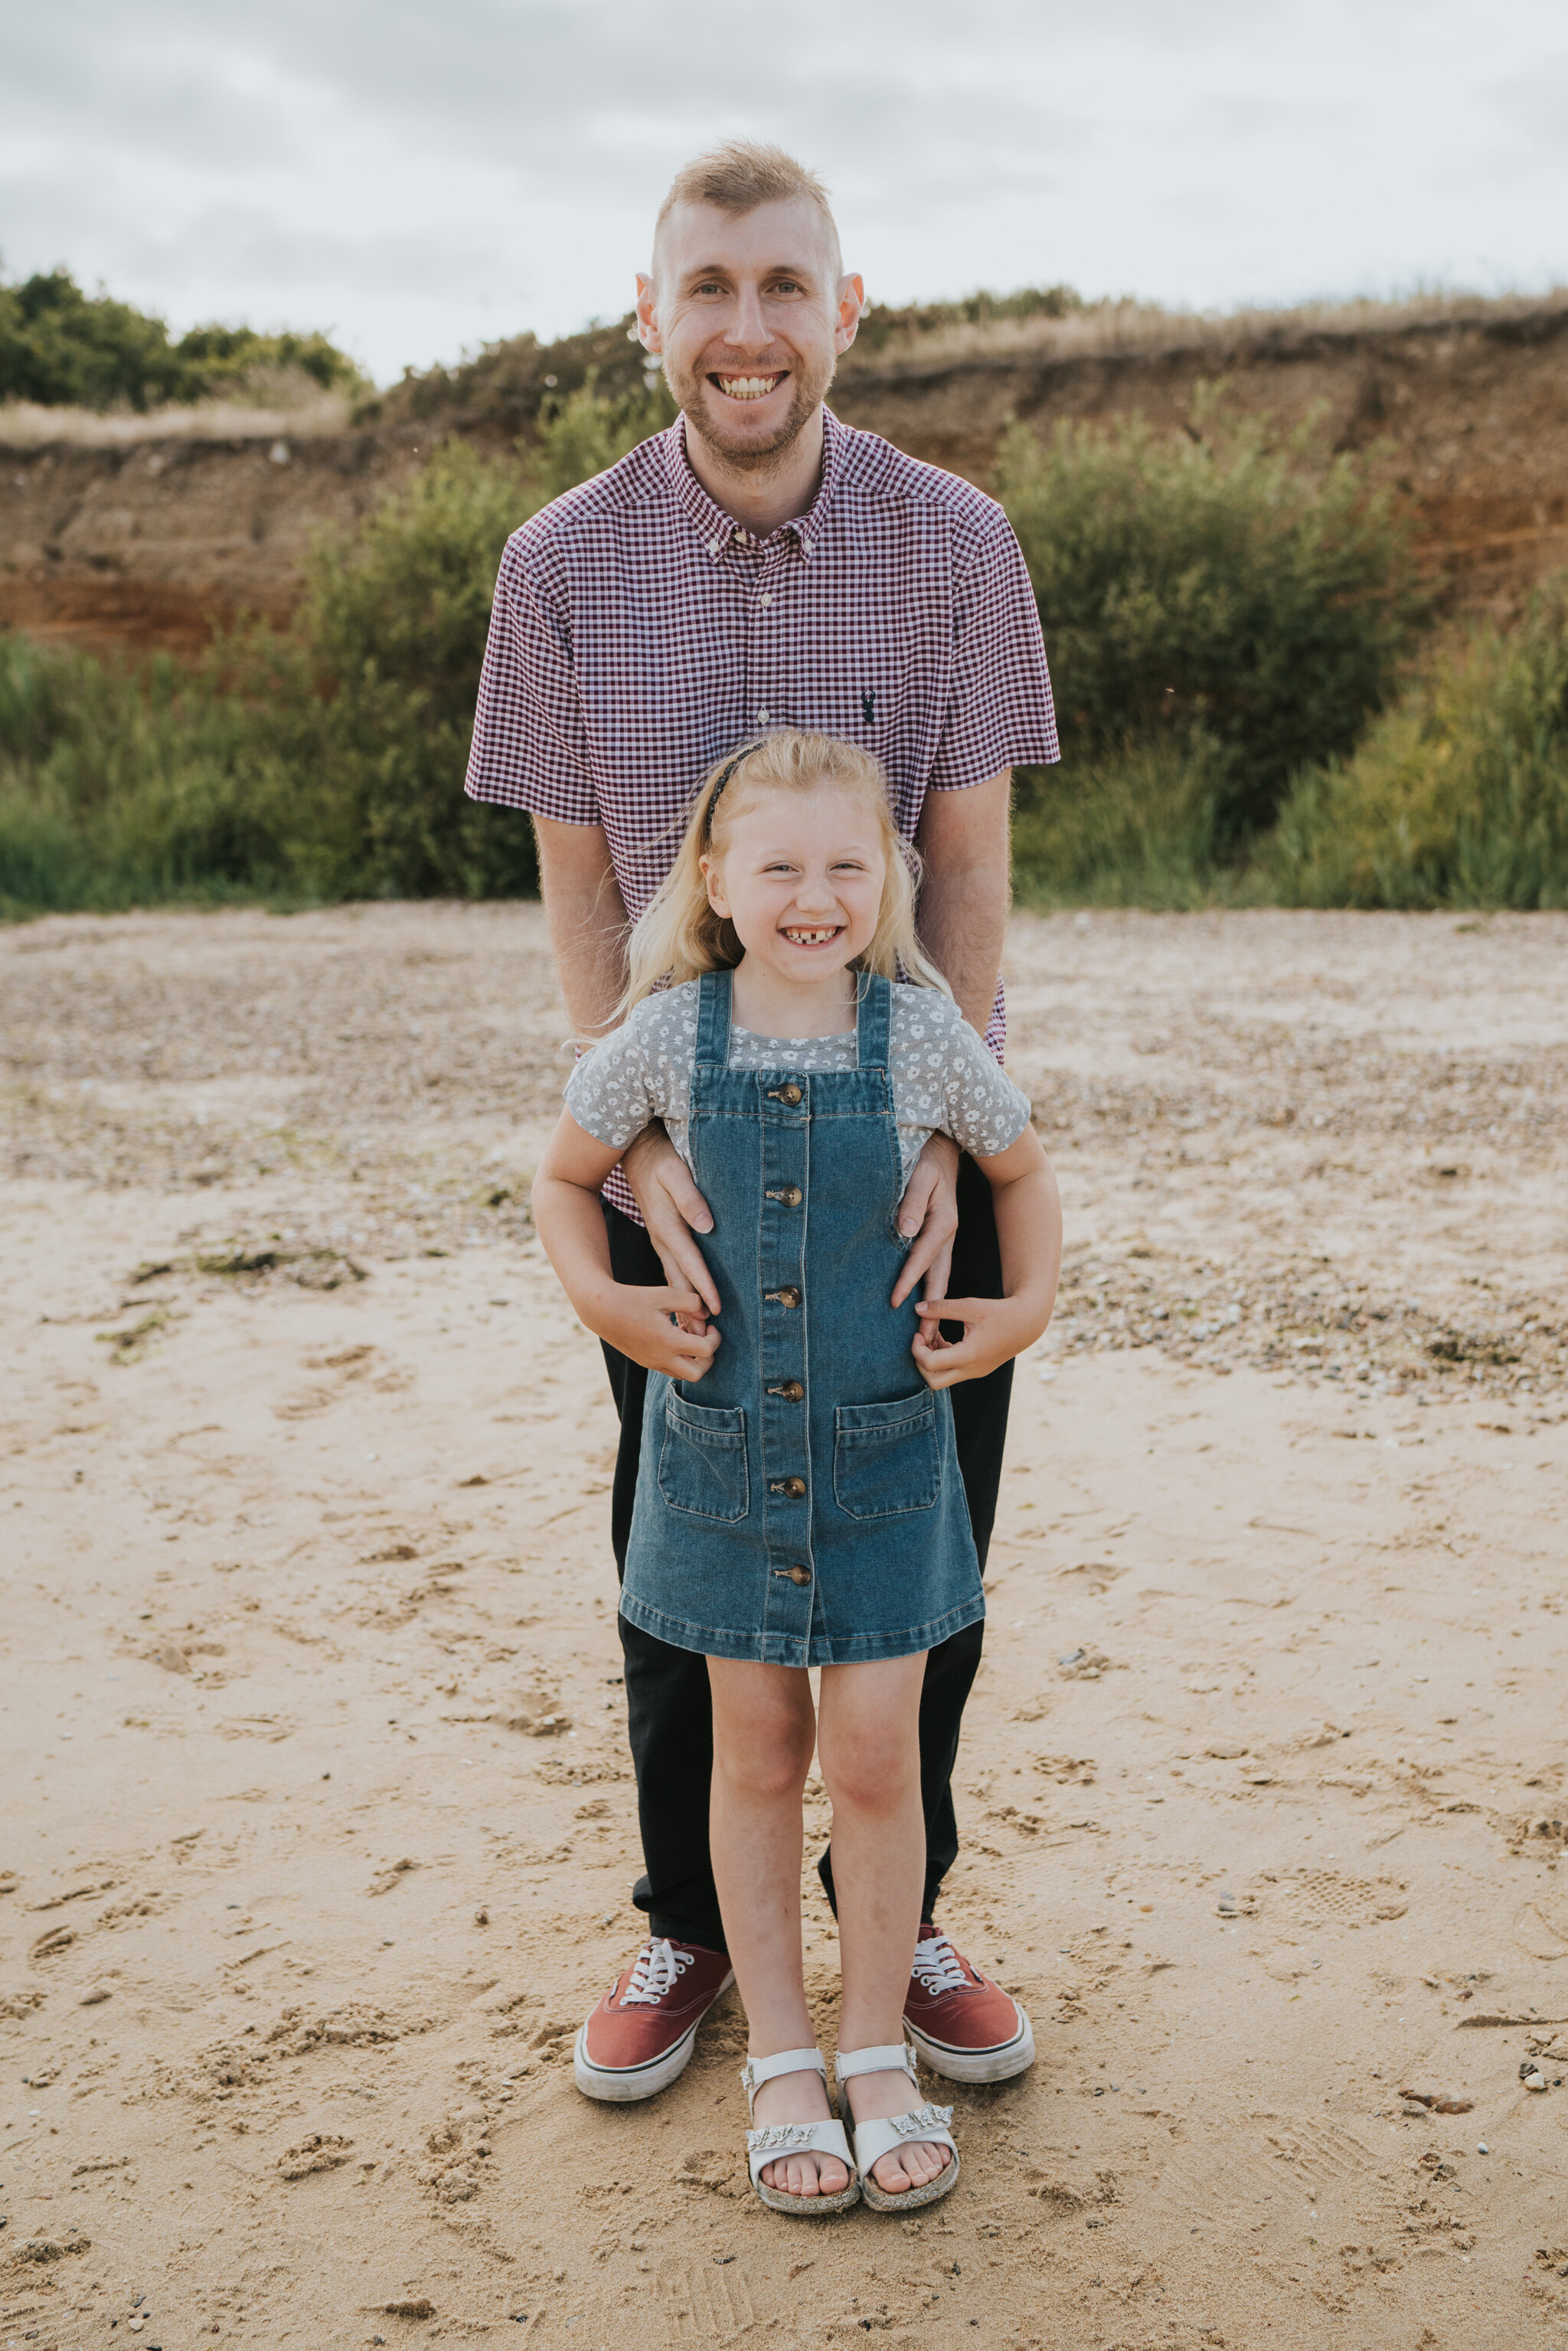 celebratory-beach-family-session-thomson-family-cudmore-grove-east-mersea-grace-elizabeth-colchester-essex-devon-suffolk-and-norfolk-alternative-wedding-and-family-photographer (21 of 53).jpg